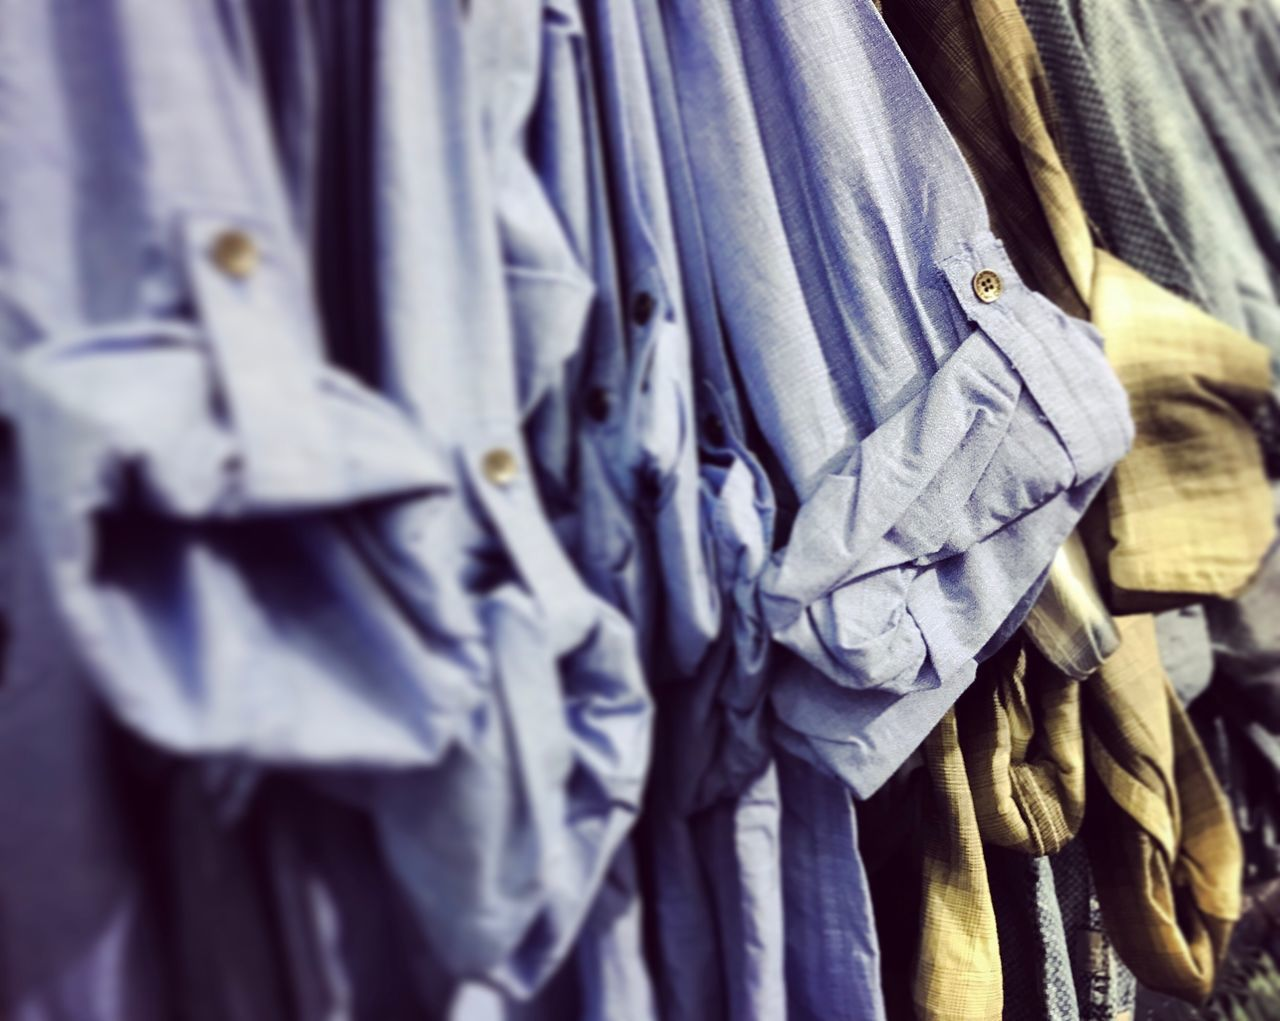 Hanging Large Group Of Objects Close-up No People Indoors  Indoor Photography Day Shirts Long Sleeved Long Sleeves Clothing Sleeves Men's Fashion Fashion Shopping Time Shopping ♡ Manga Mangas Point Of View